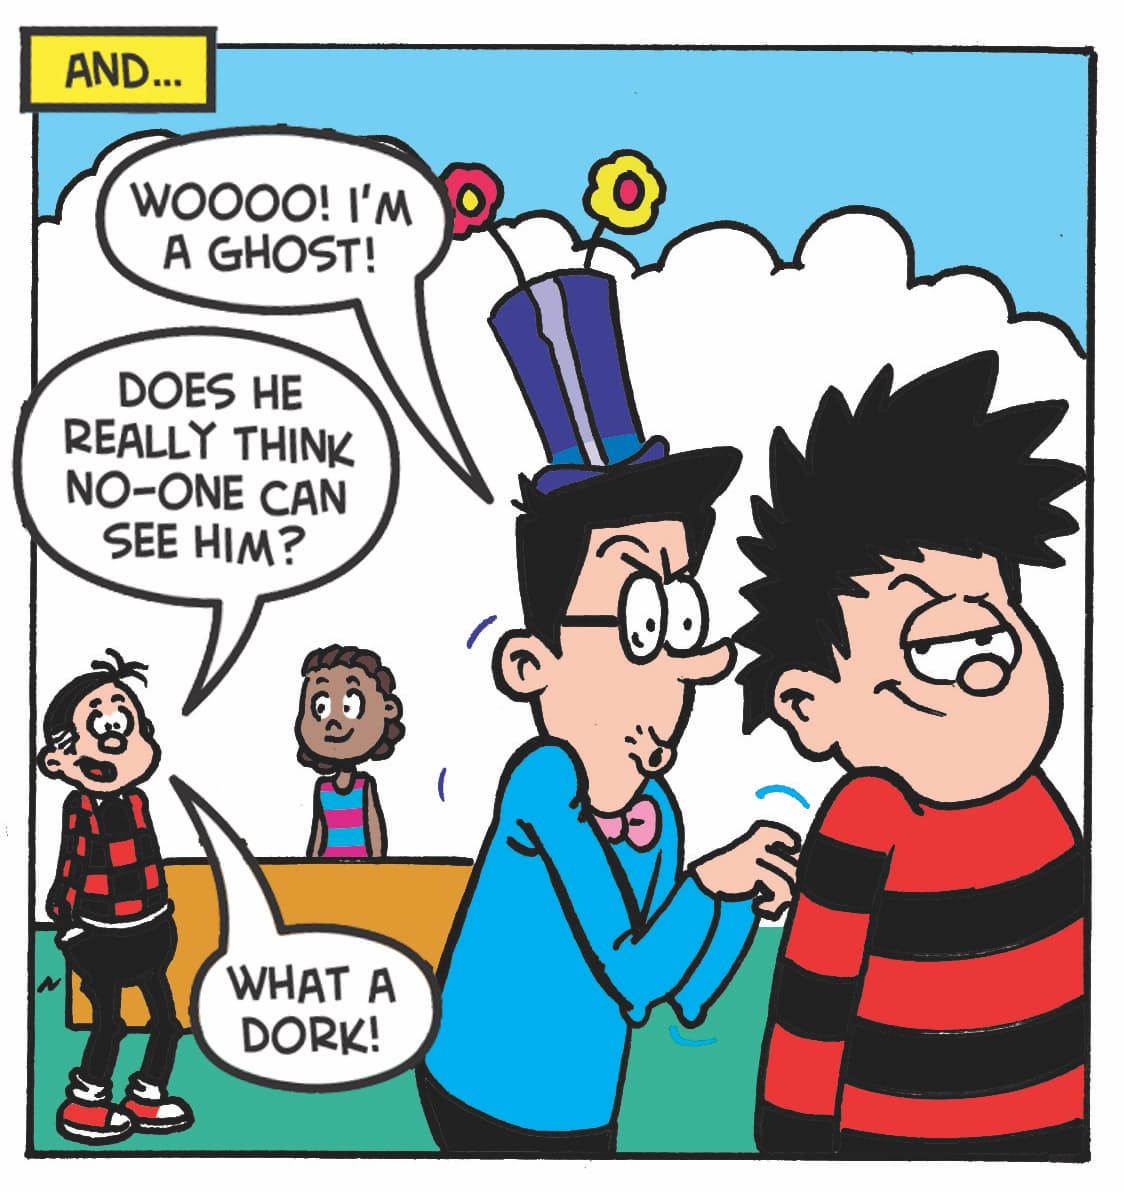 Walter: 'Wooo I'm a ghost' Roger the Dodger: 'Does he really think no-one can see him? What a dork!'